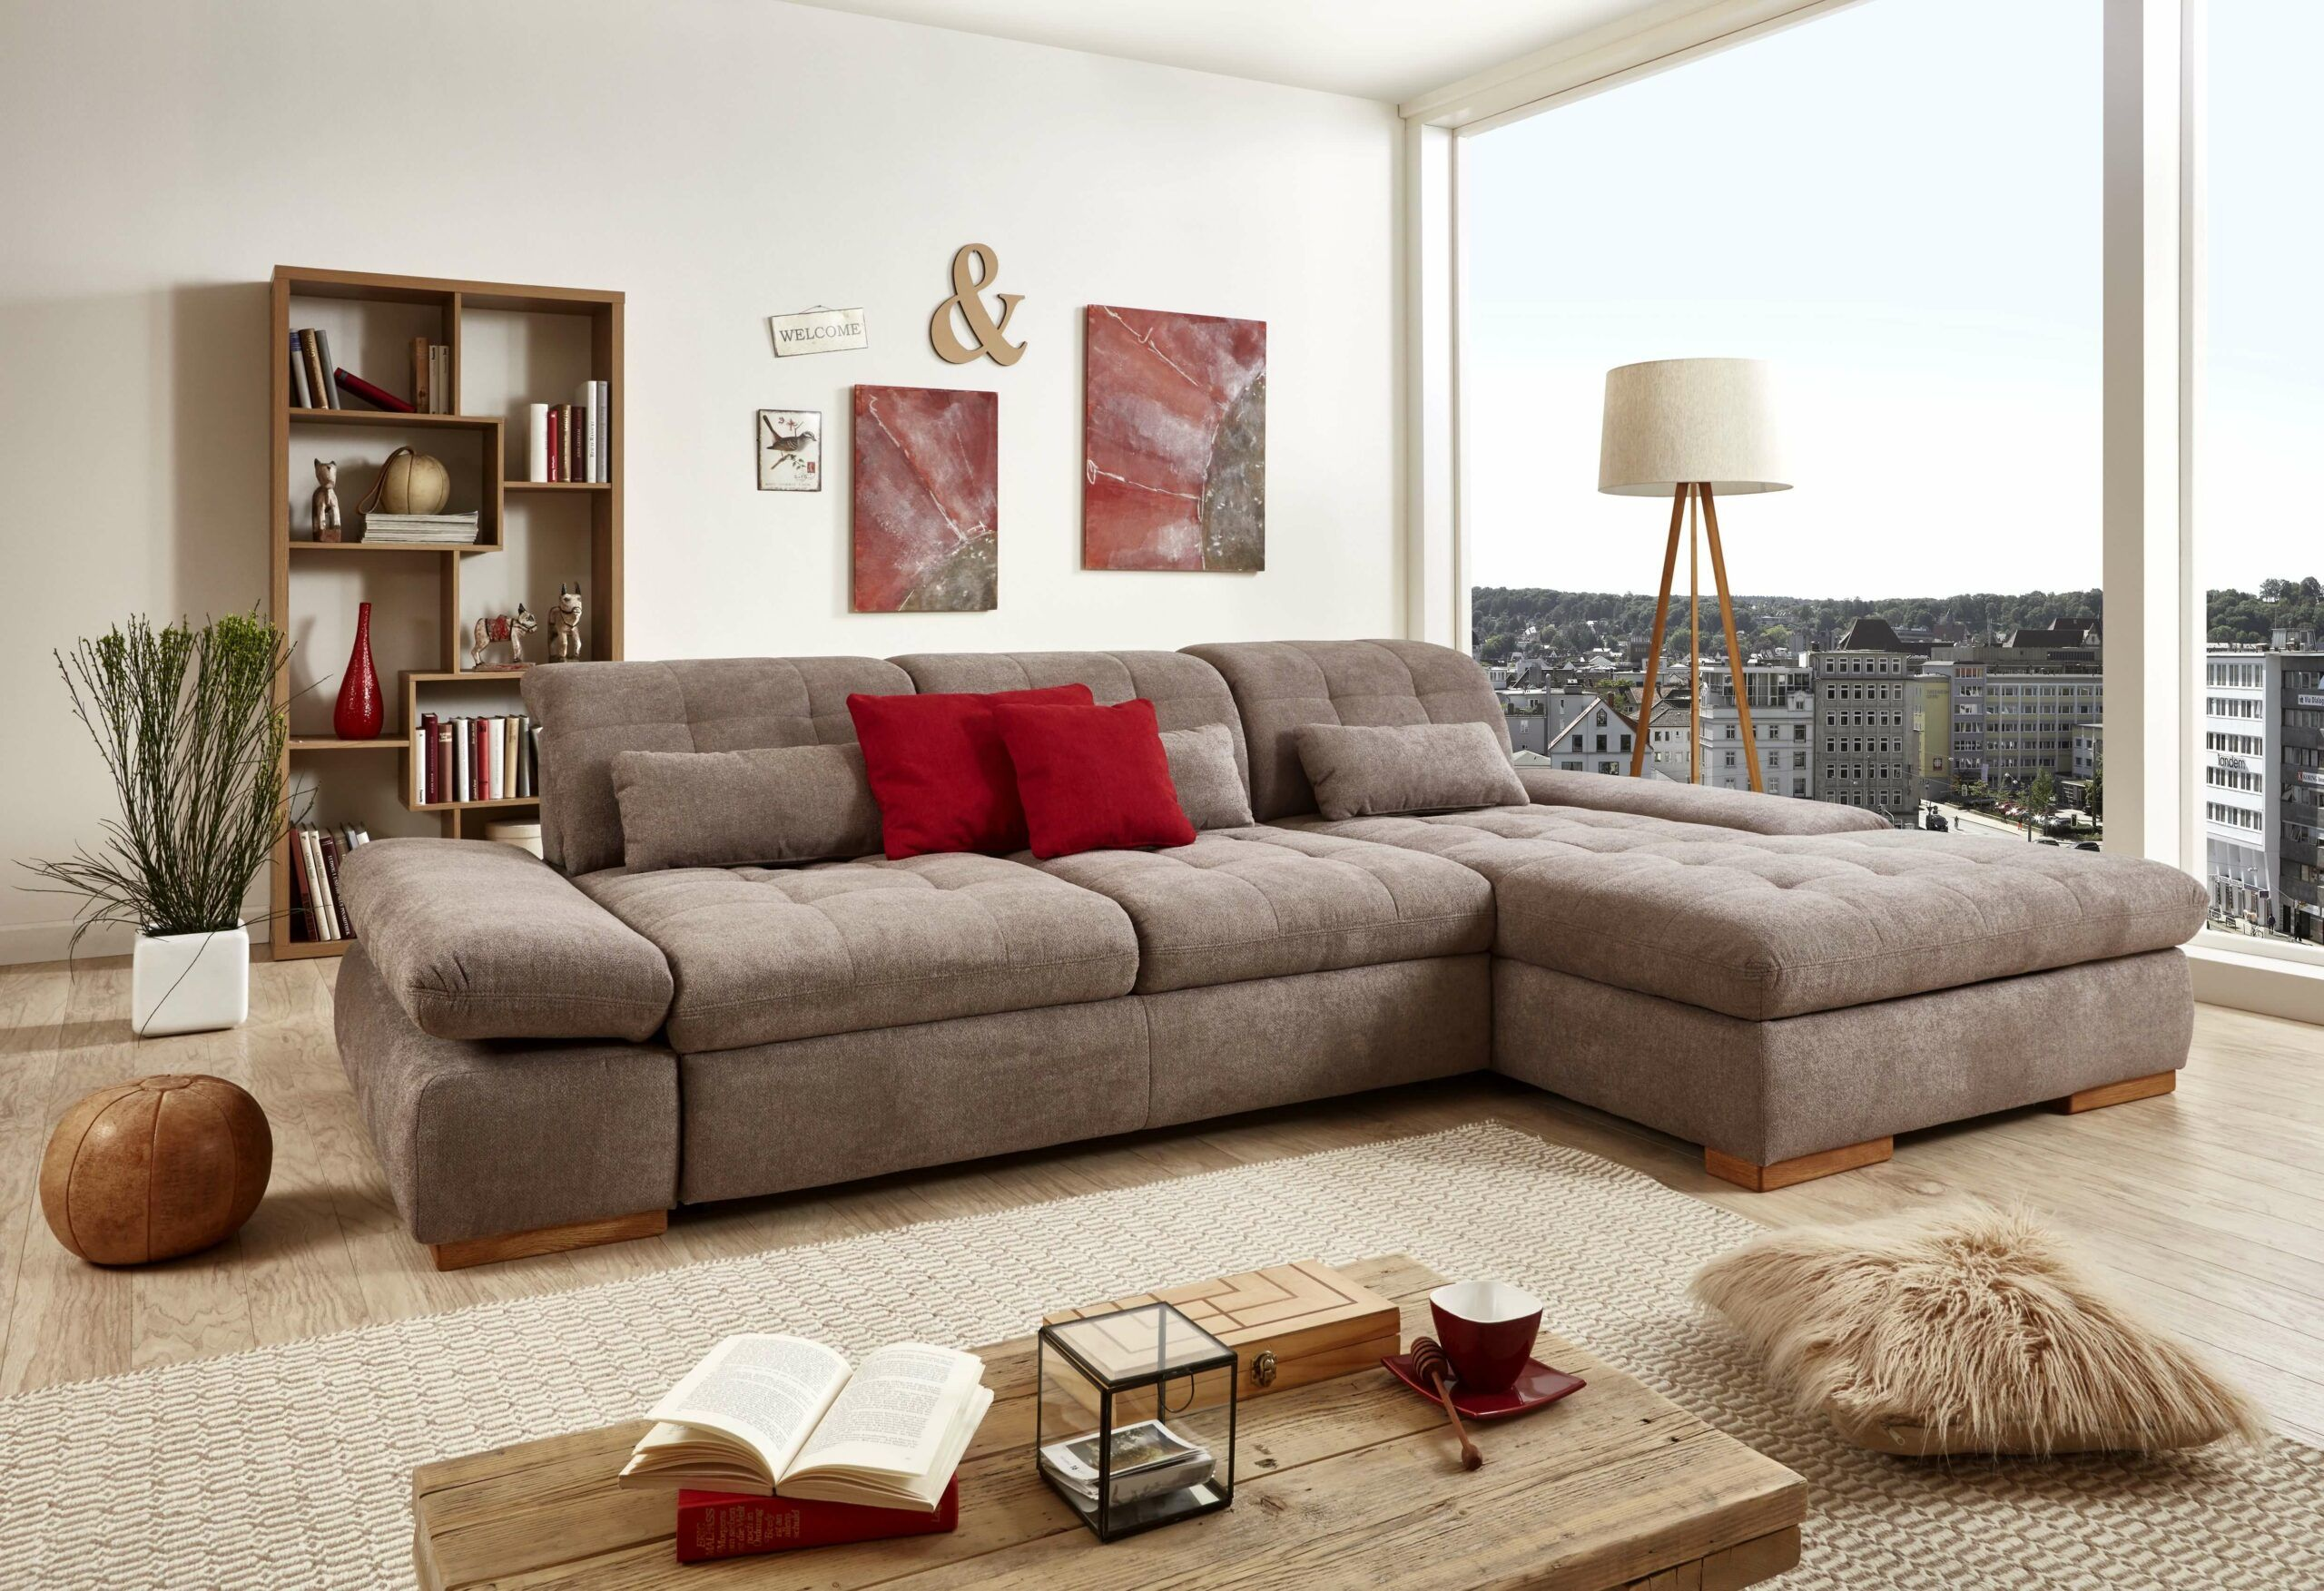 Trendige Couchgarnituren 3+ Couchgarnitur Wohnzimmer | Home Decor, Sectional Couch, Furniture